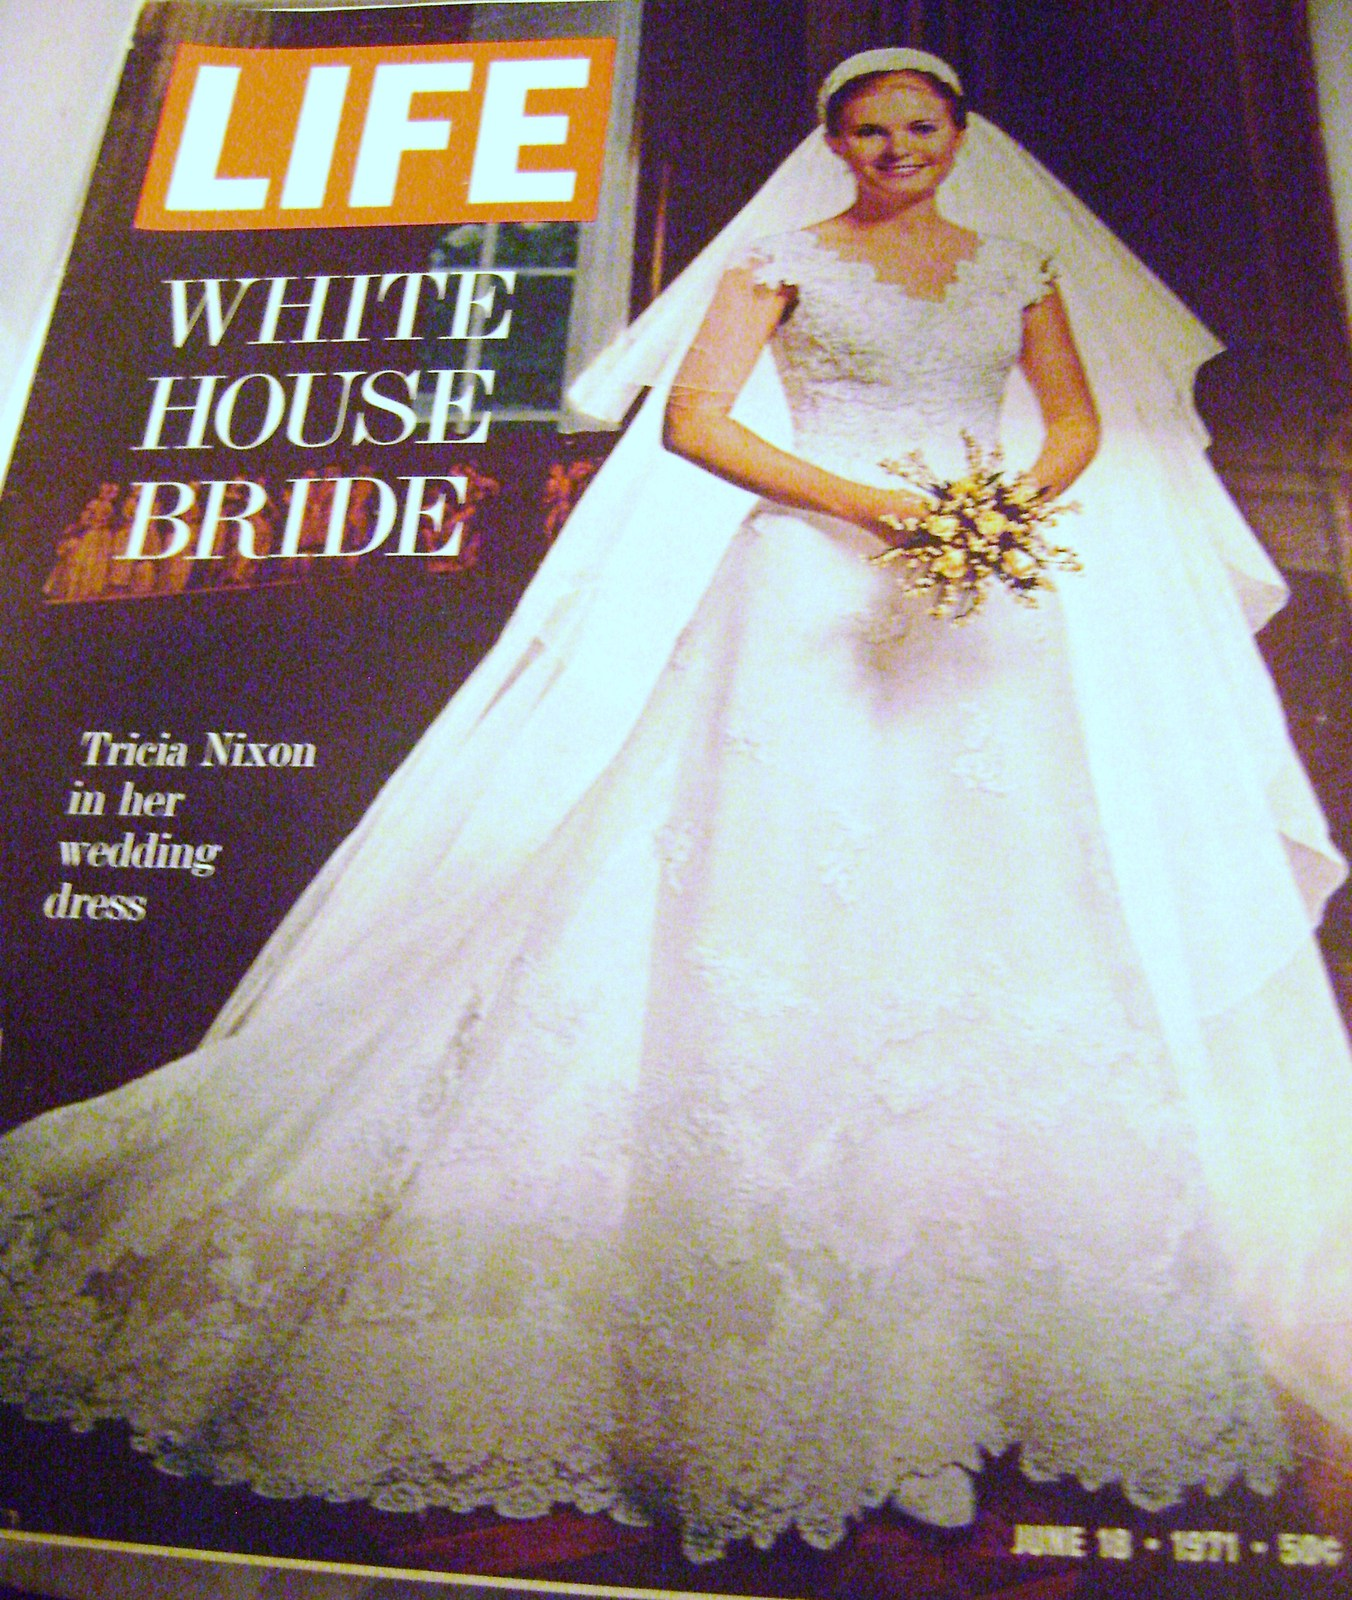 Tricia Nixon Wedding Gown: Vintage Life Magazine With Tricia Nixon In Her Wedding